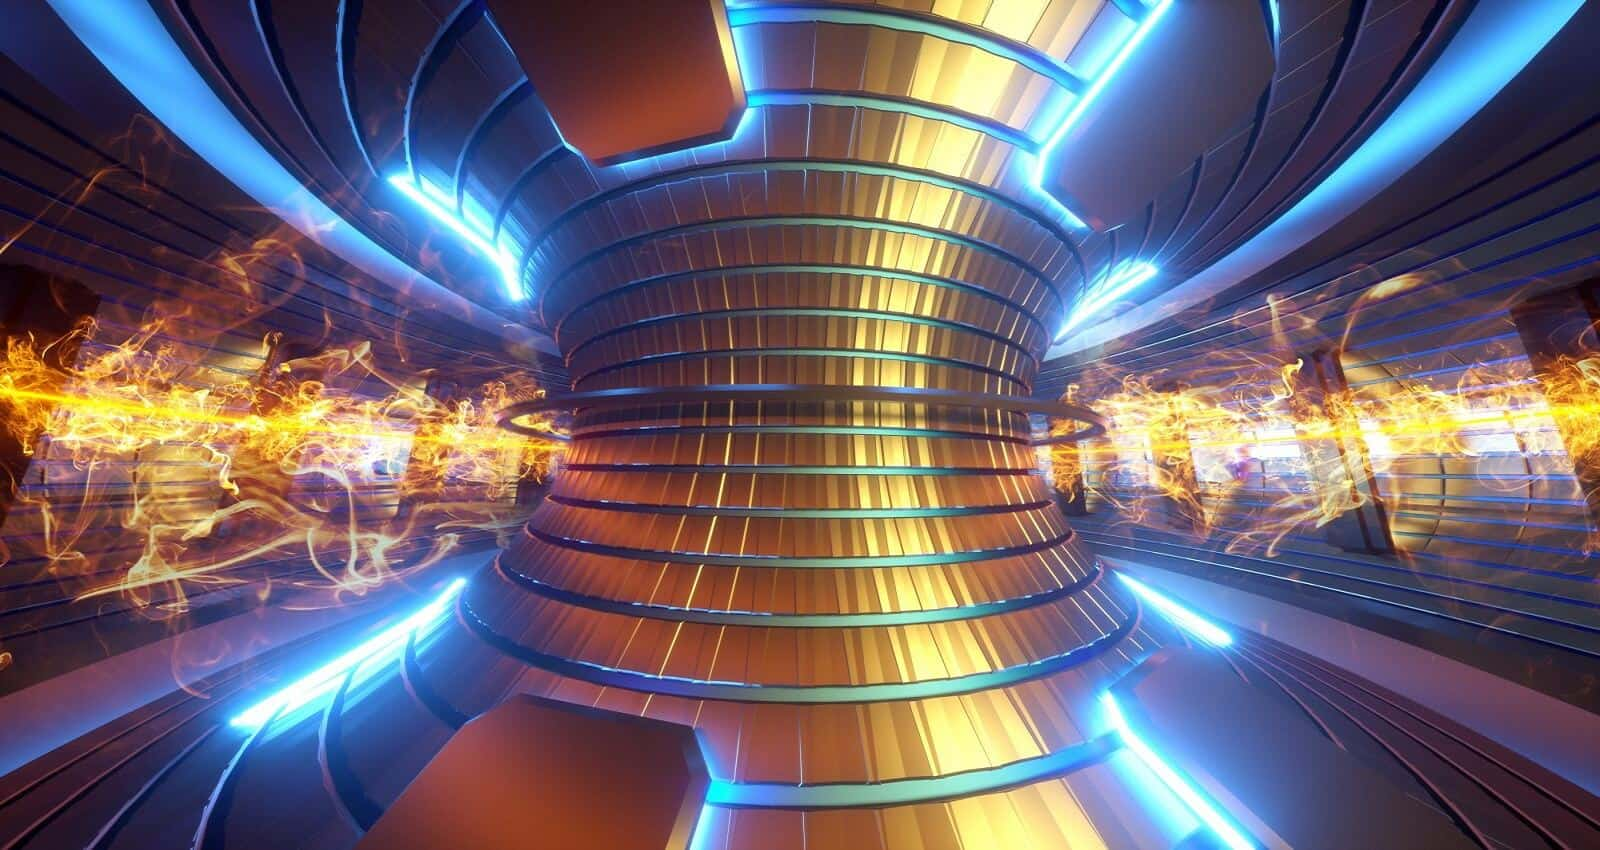 this summer, Scientists will test the world's first nuclear fusion reactor